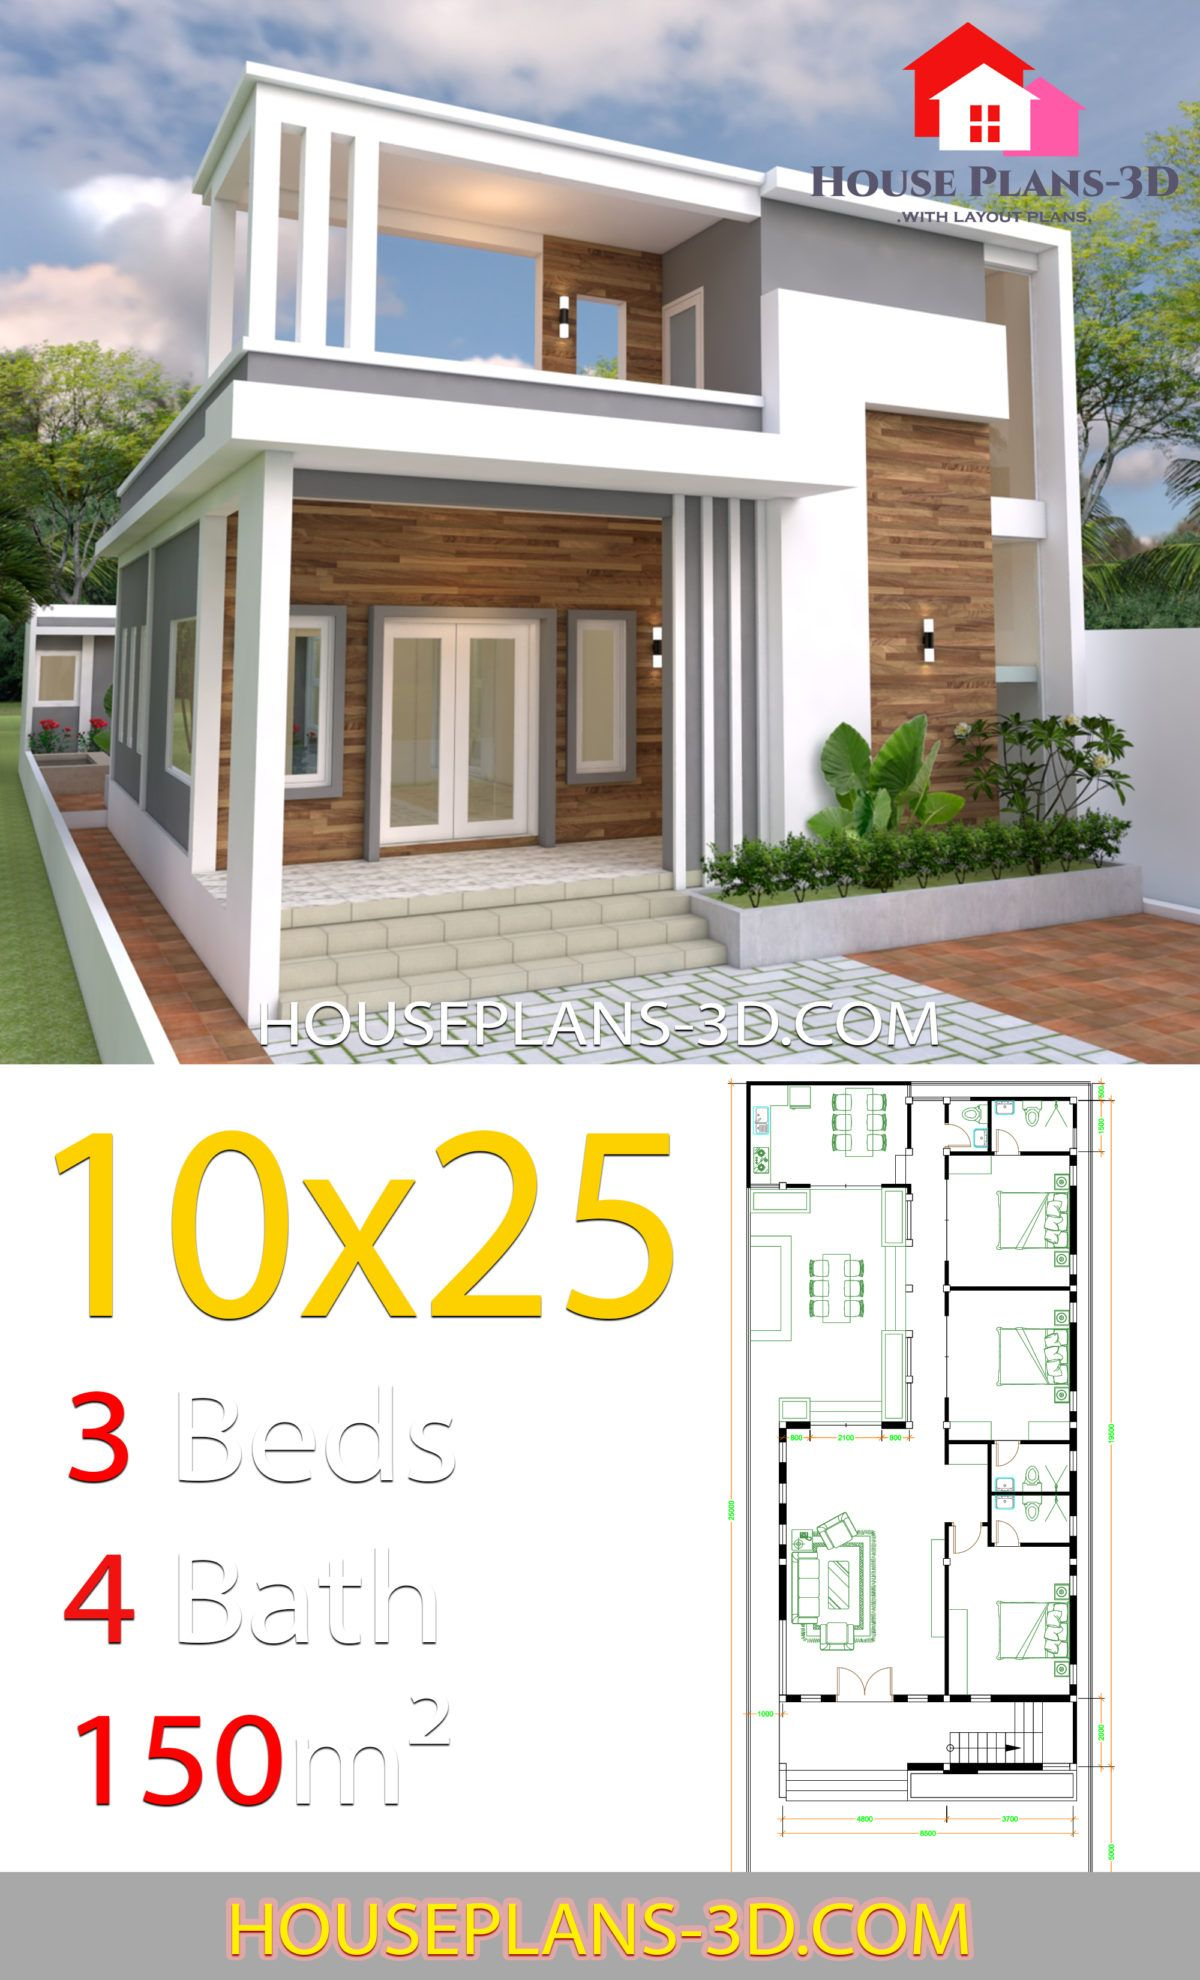 House Design Plans 10x25 With 3 Bedrooms House Plans 3d In 2020 Modern House Plans House Plans House Design